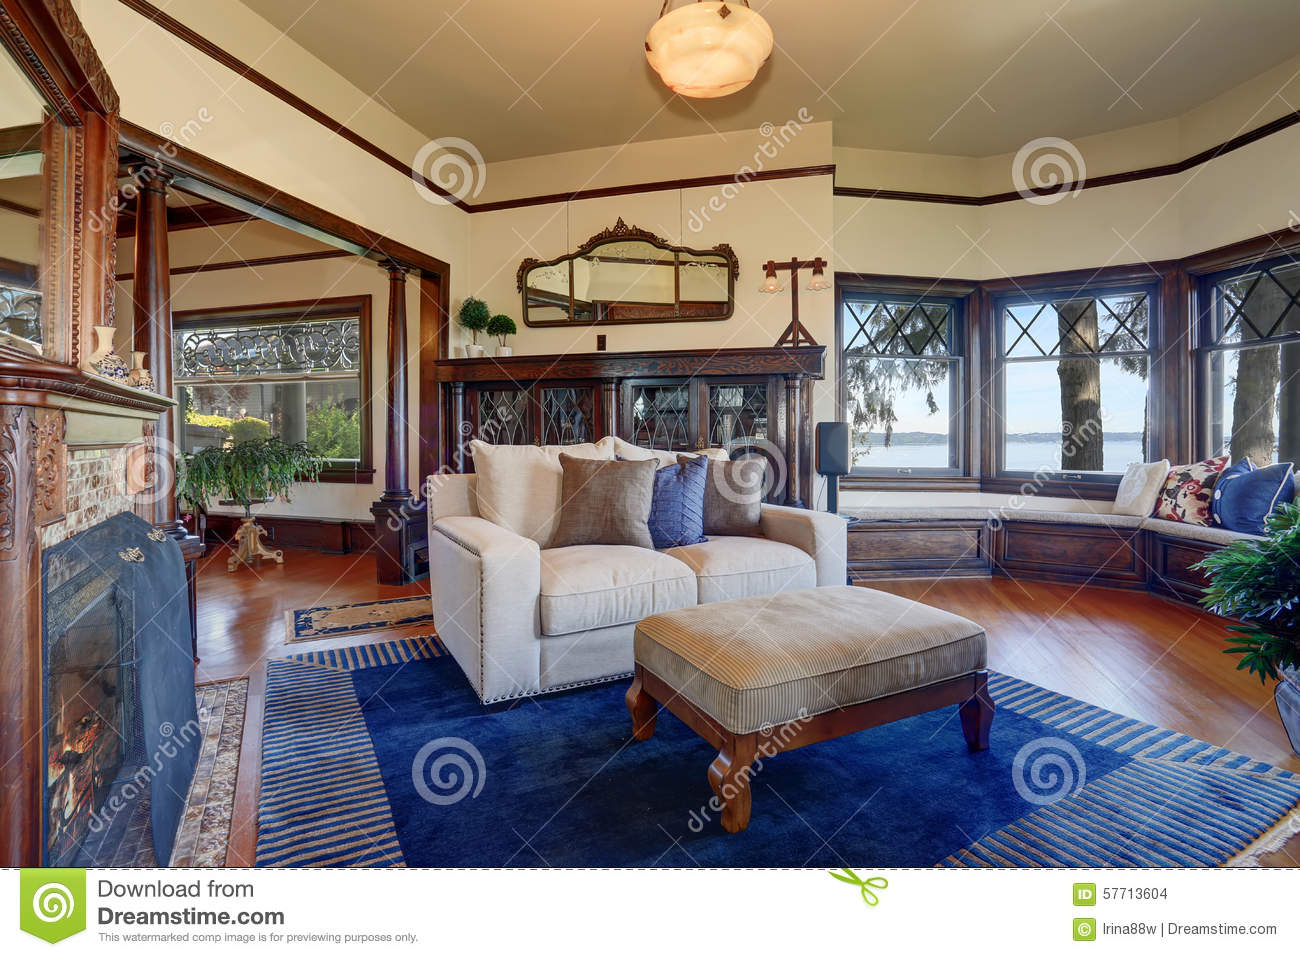 Royalty Free Stock Photo Download Authentic Styled Living Room With Royal Blue Rug